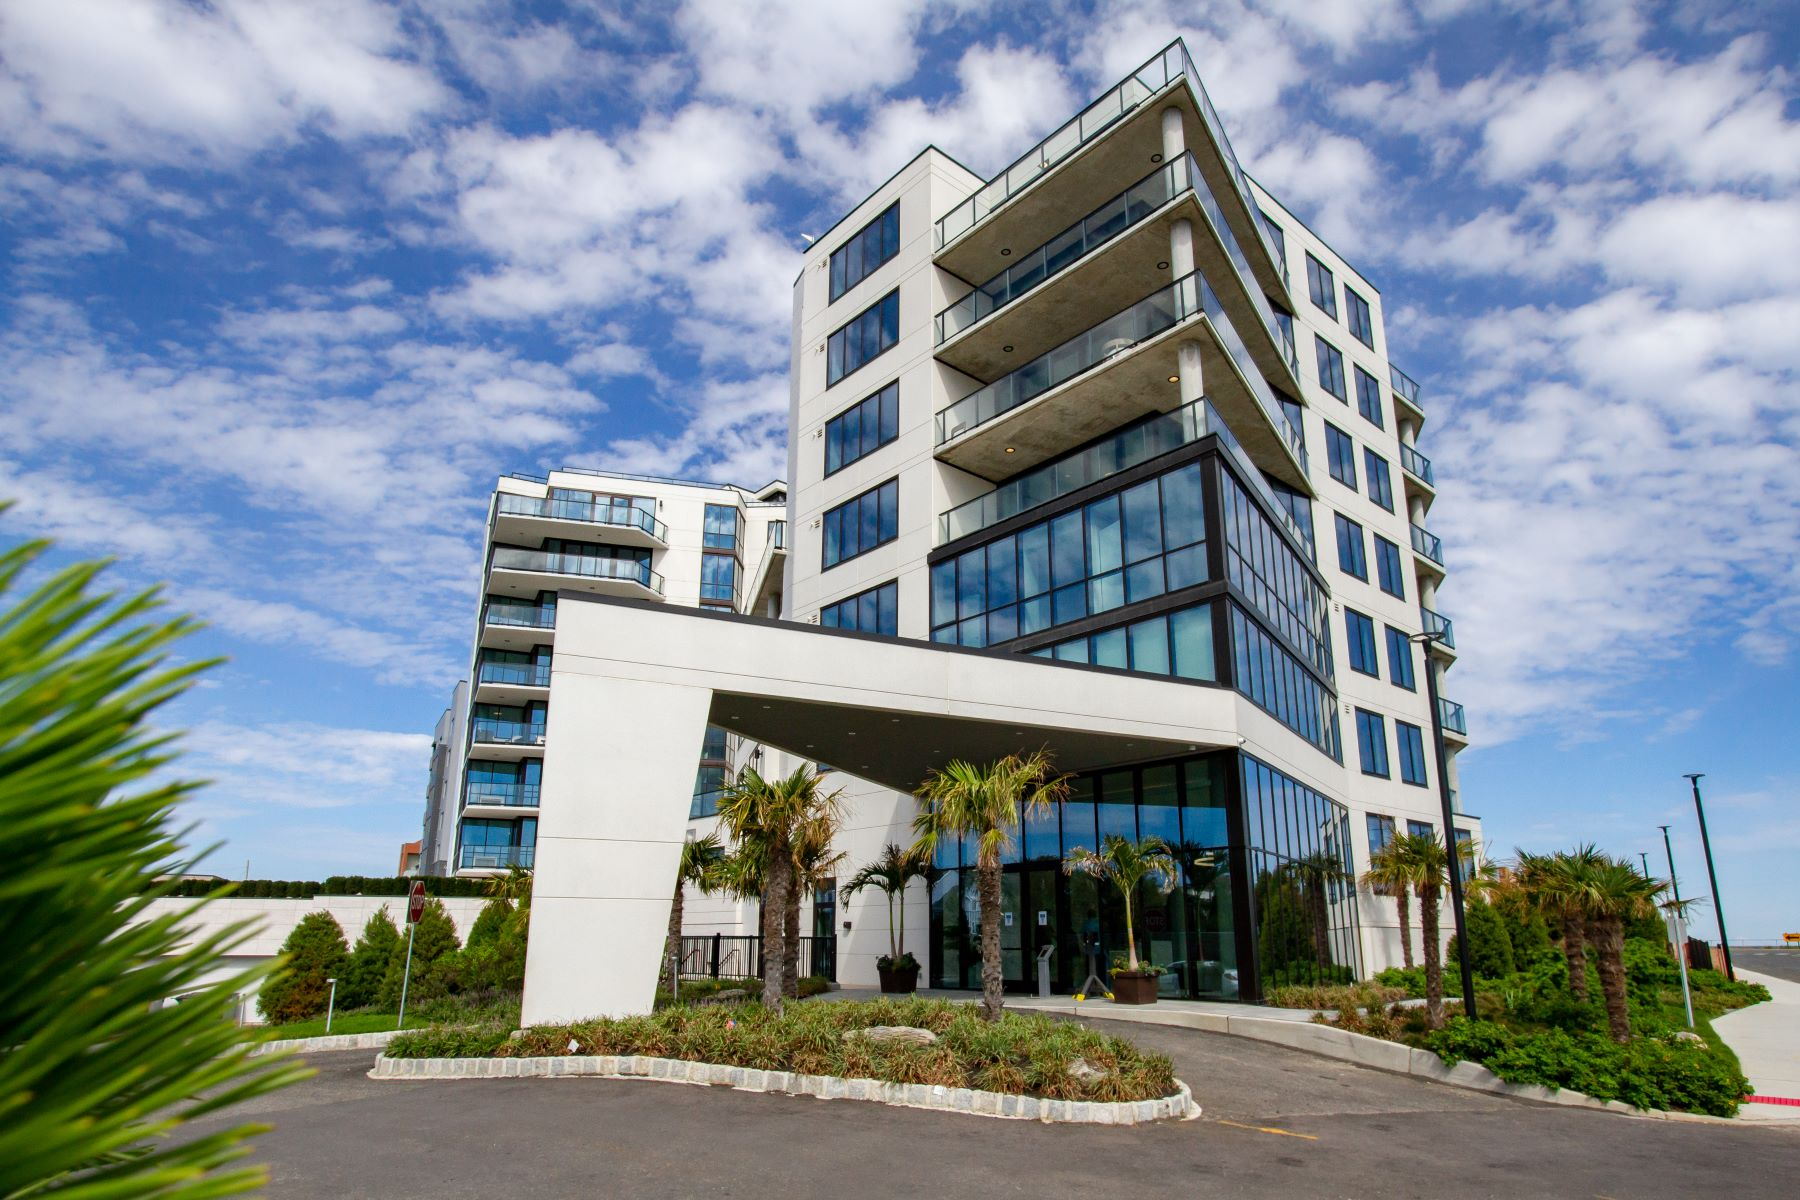 Condominiums for Sale at South Beach at Long Branch 350 Ocean Avenue 407, Long Branch, New Jersey 07740 United States